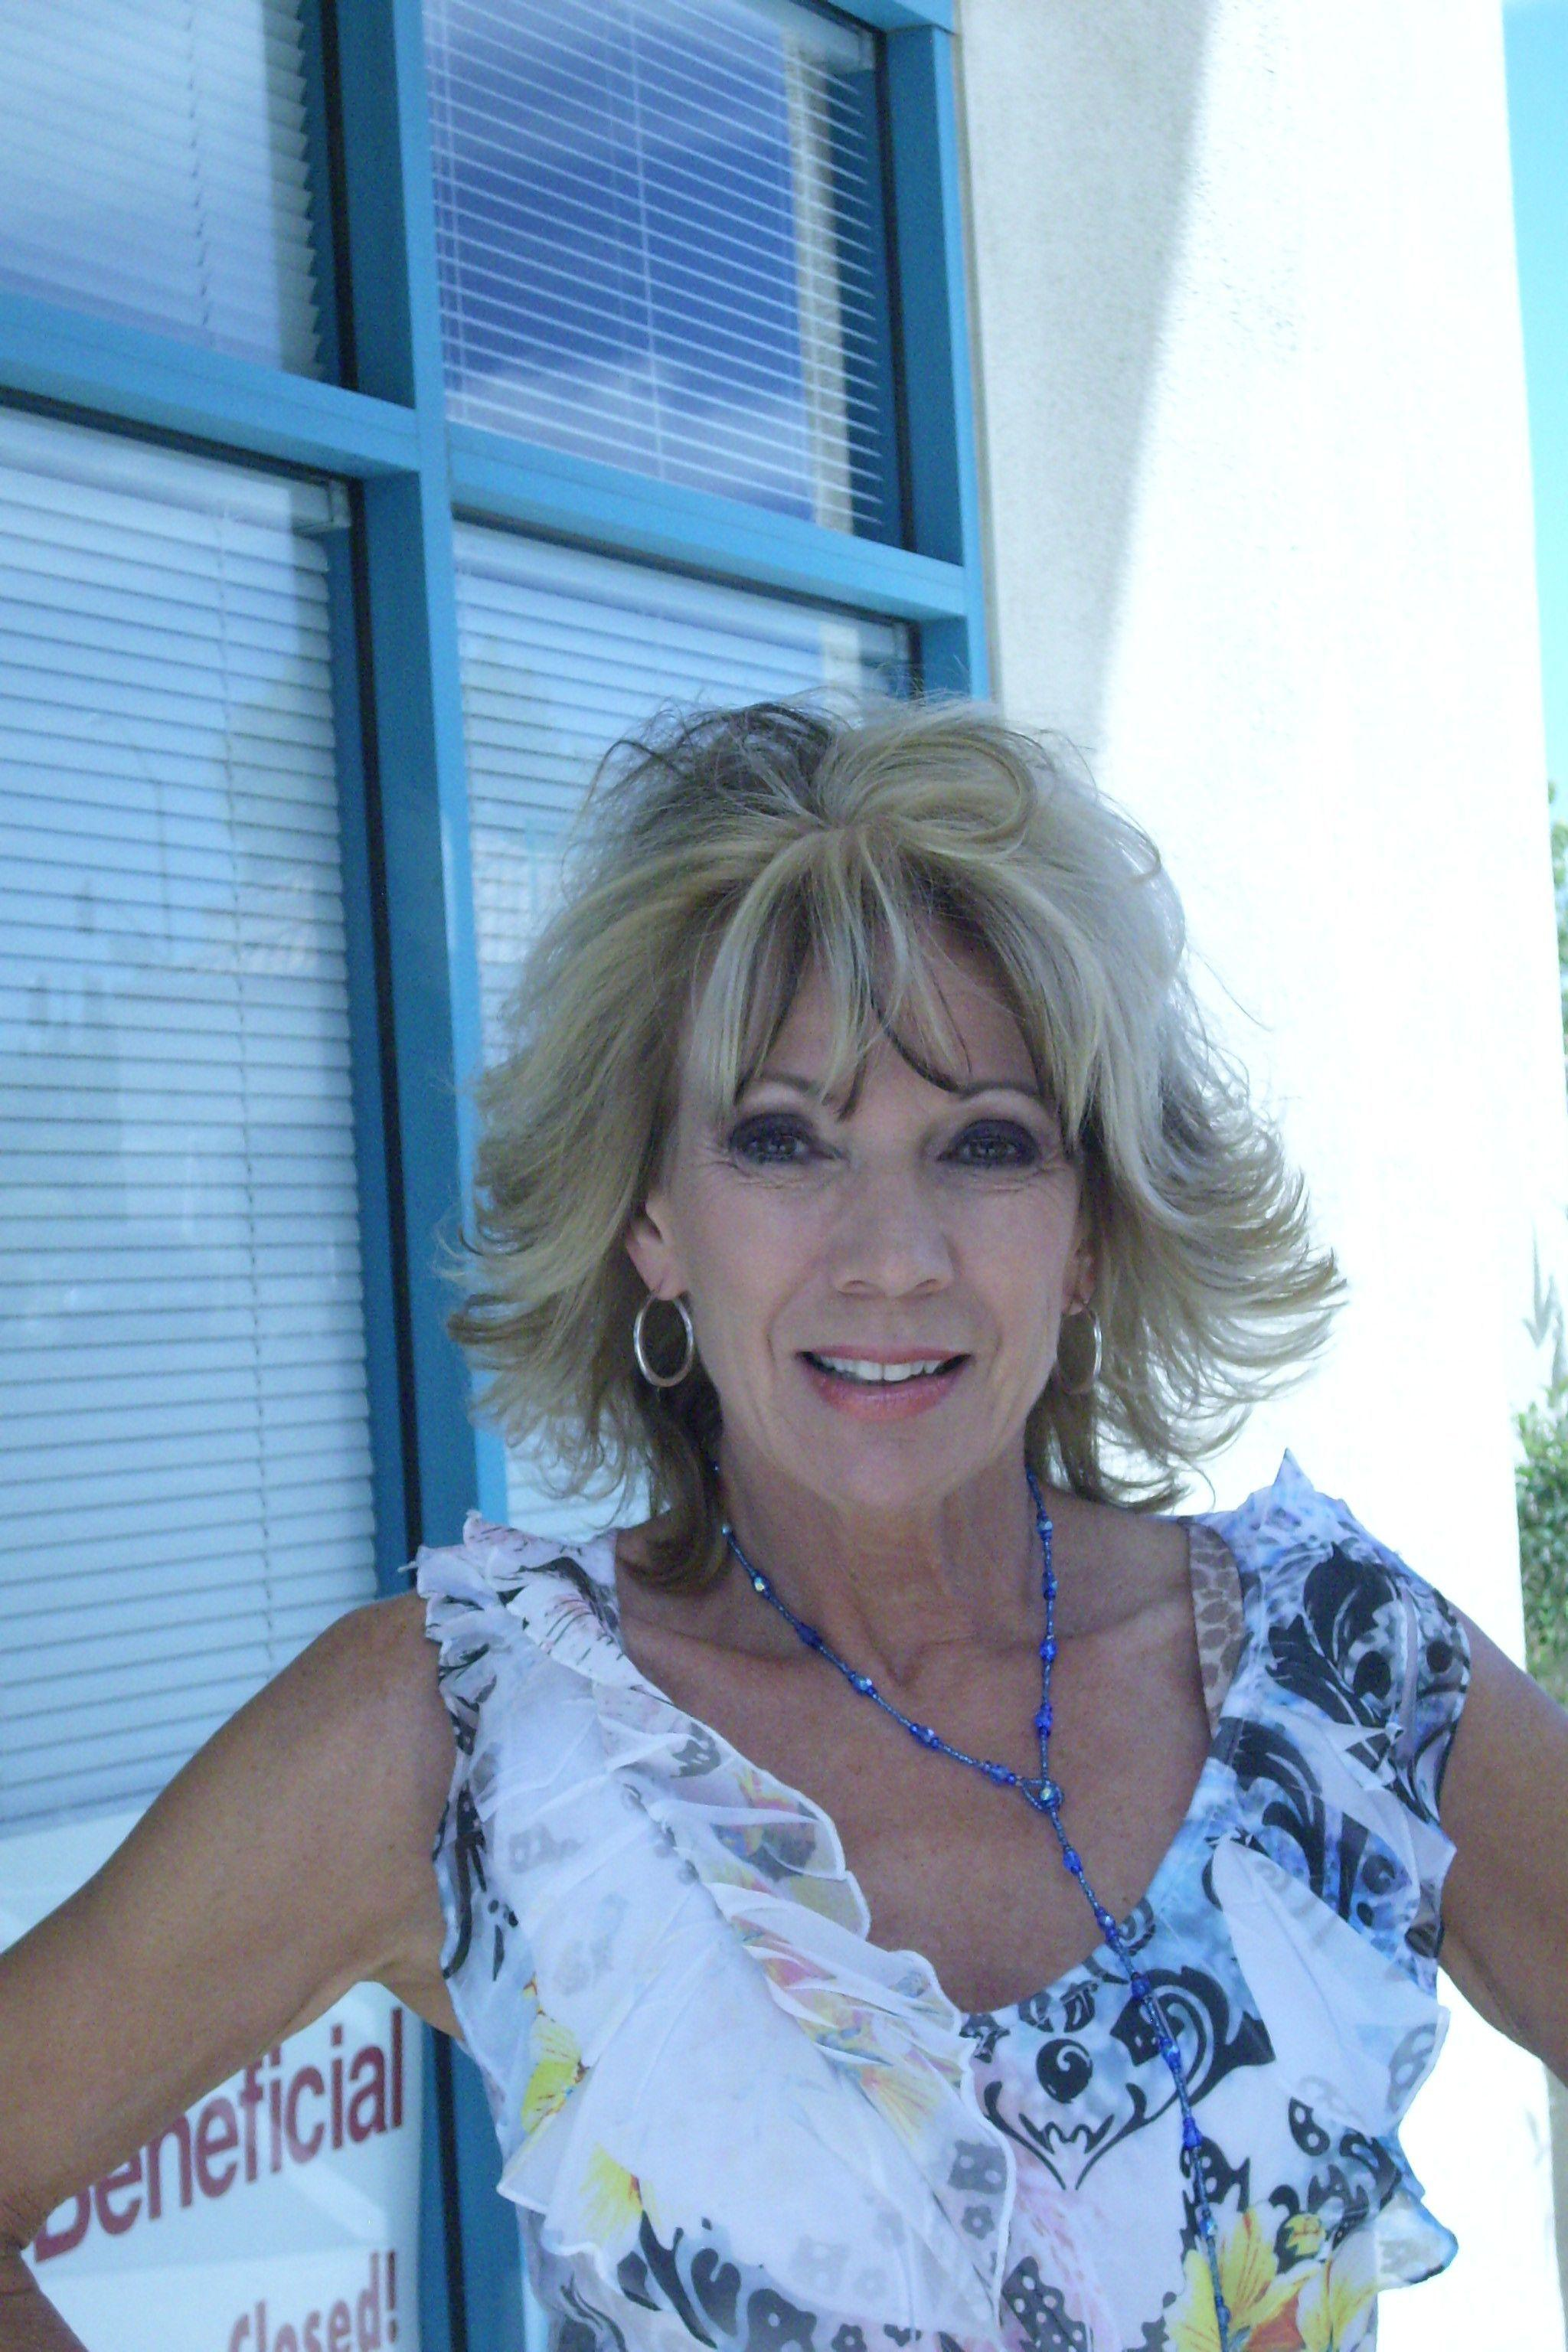 newport coast singles over 50 Find meetups in newport coast, california about singles and meet people in your local community who share your interests.